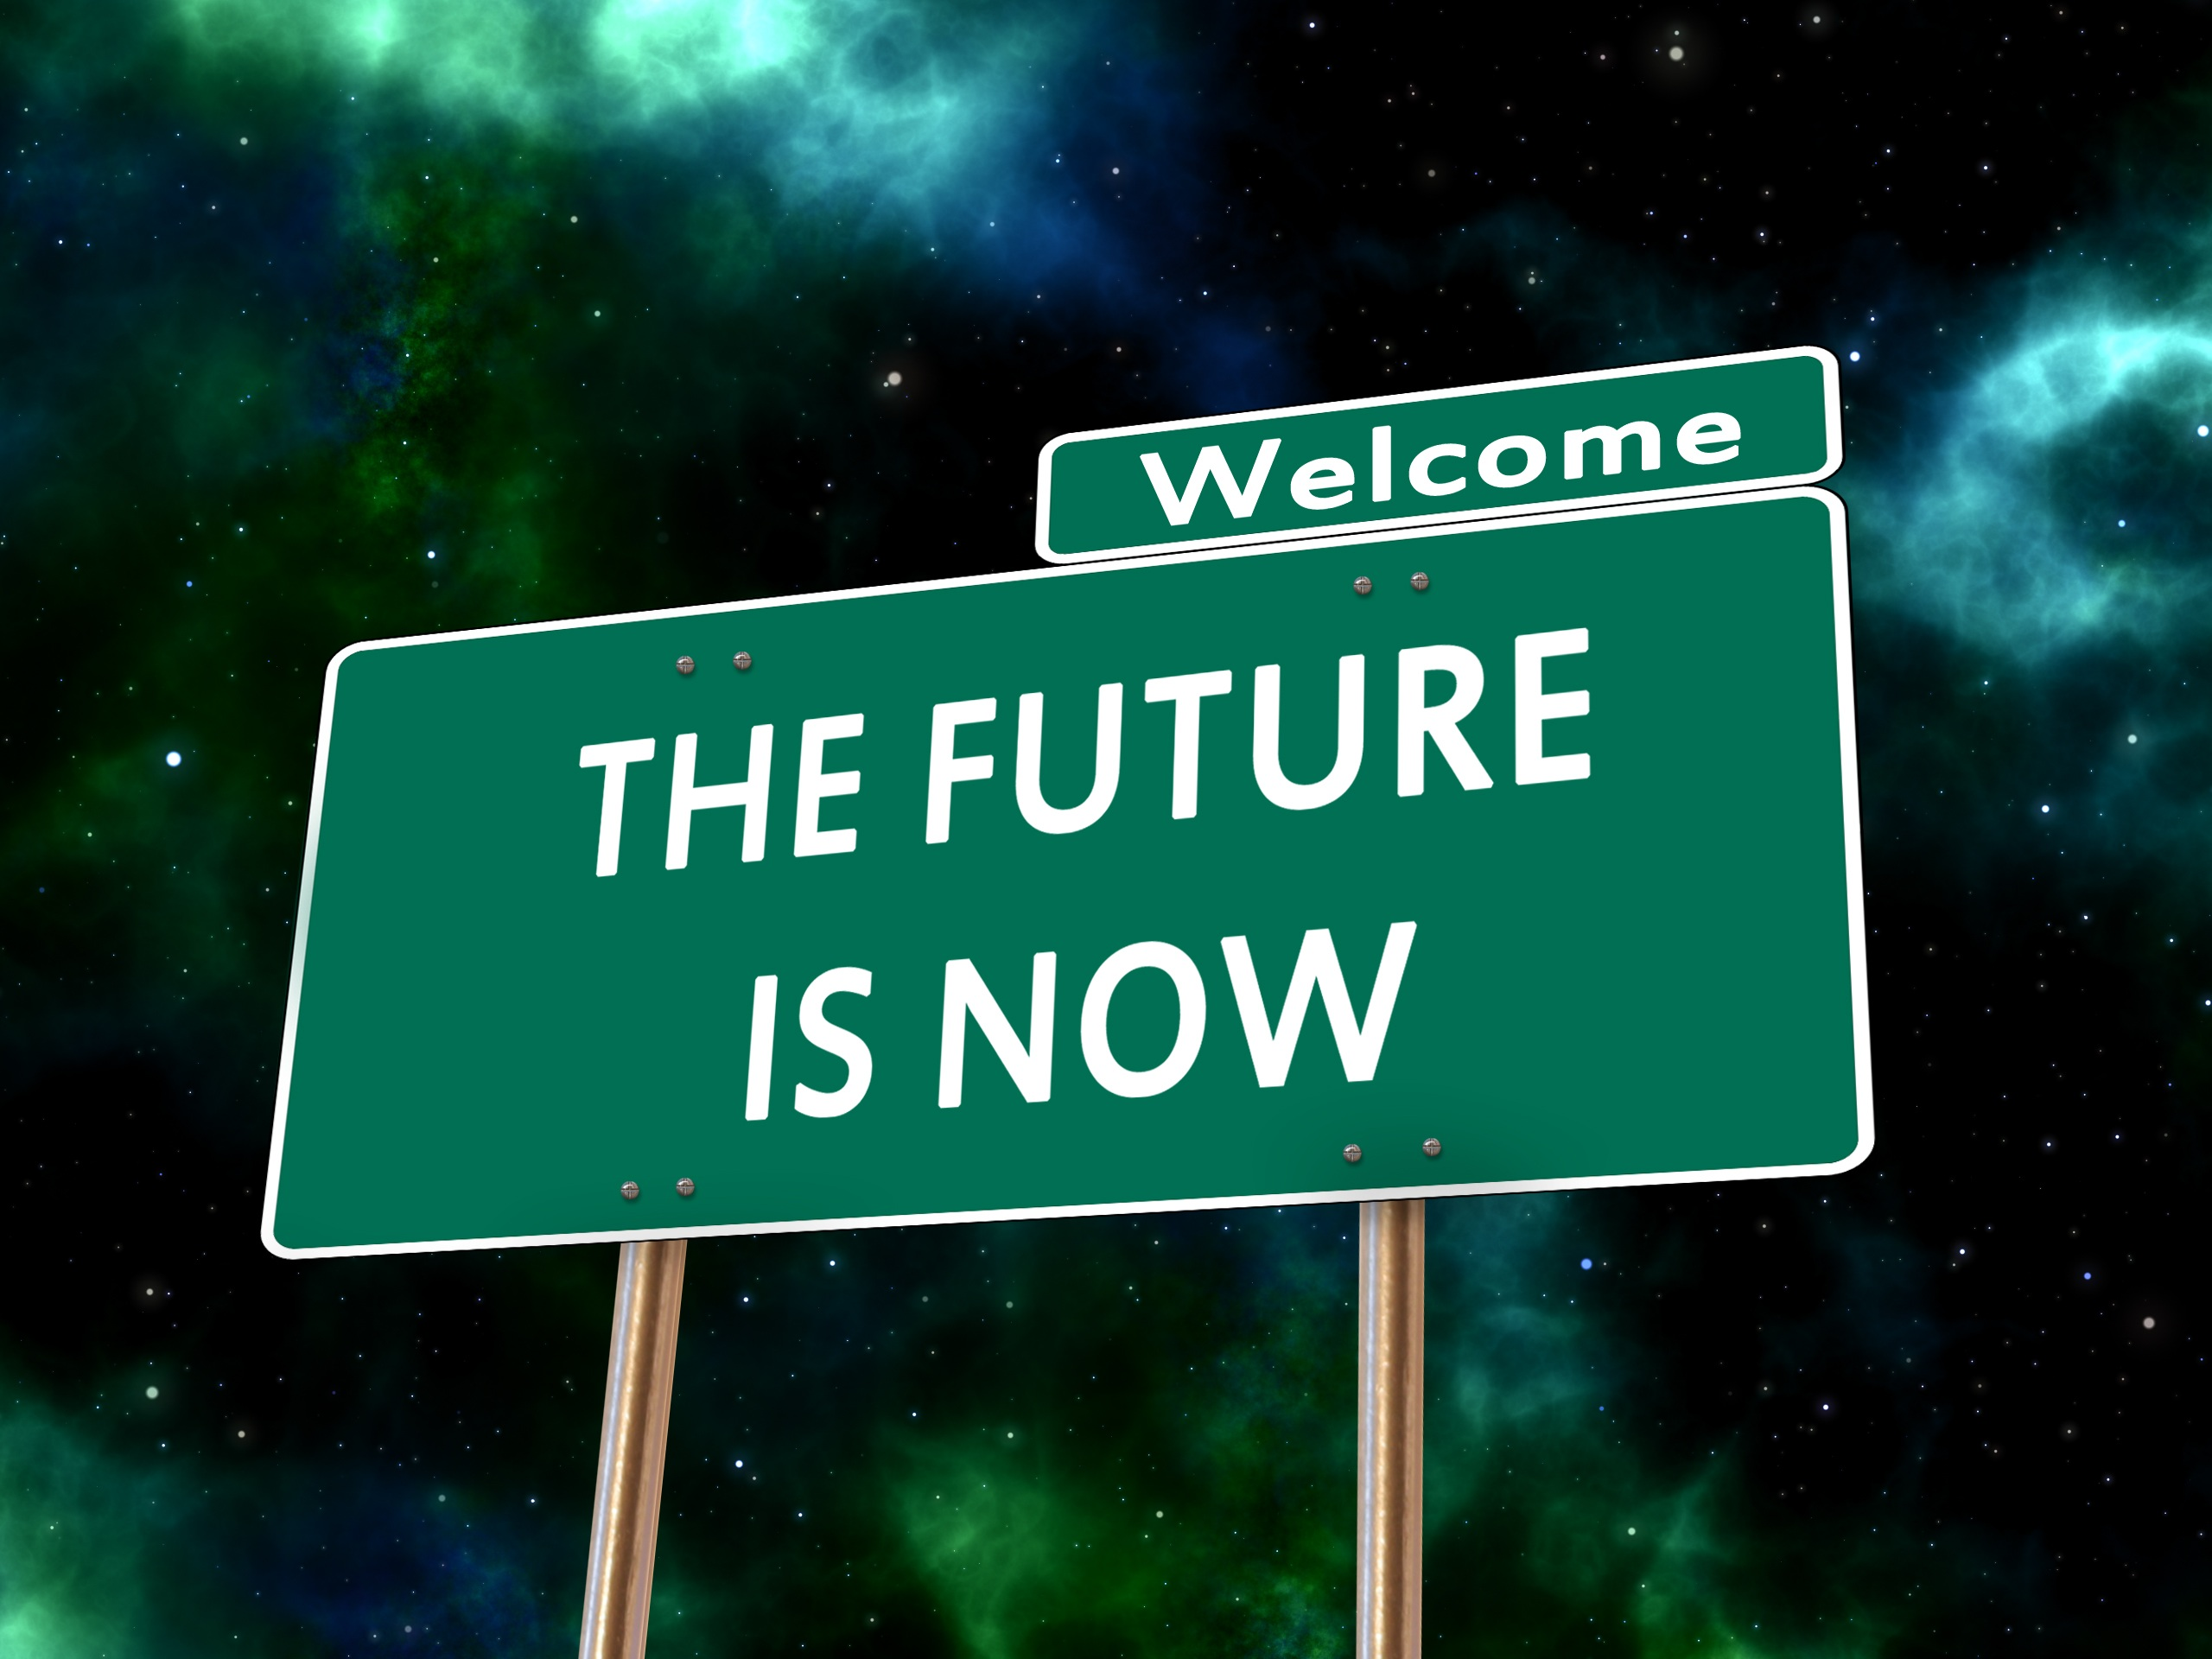 The-Future-Is-Now-Road-Sign.jpg